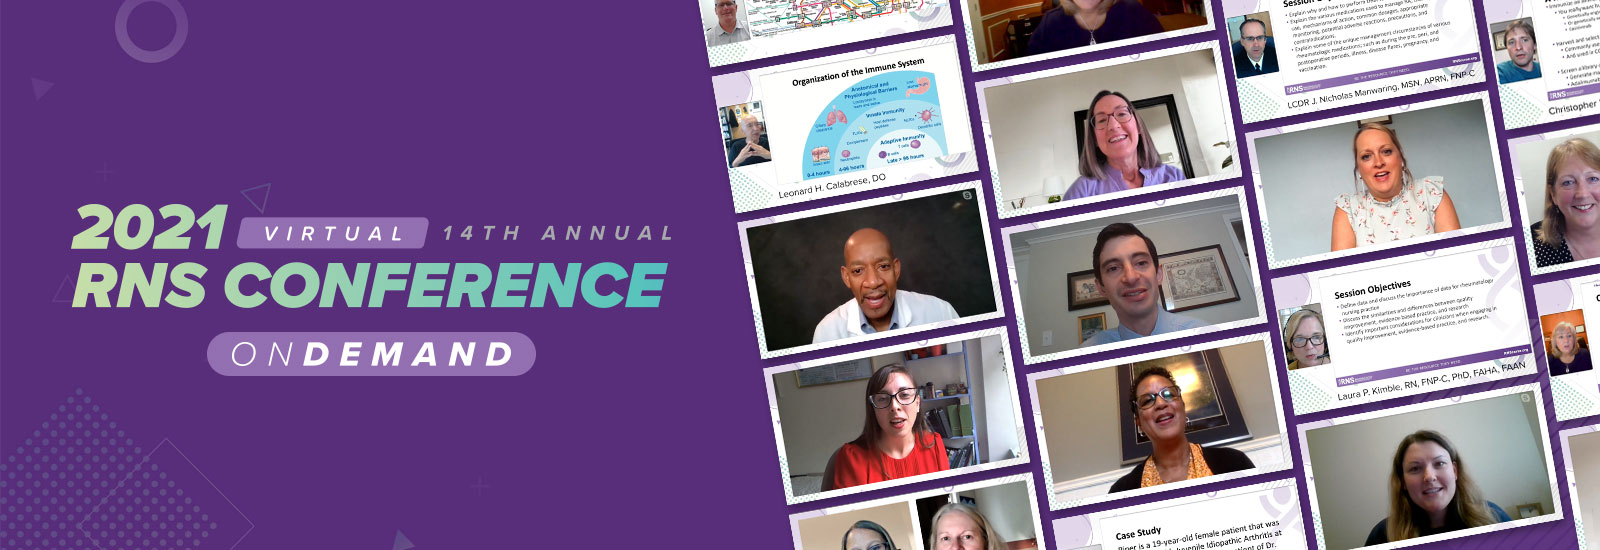 2021 RNS Conference OnDemand